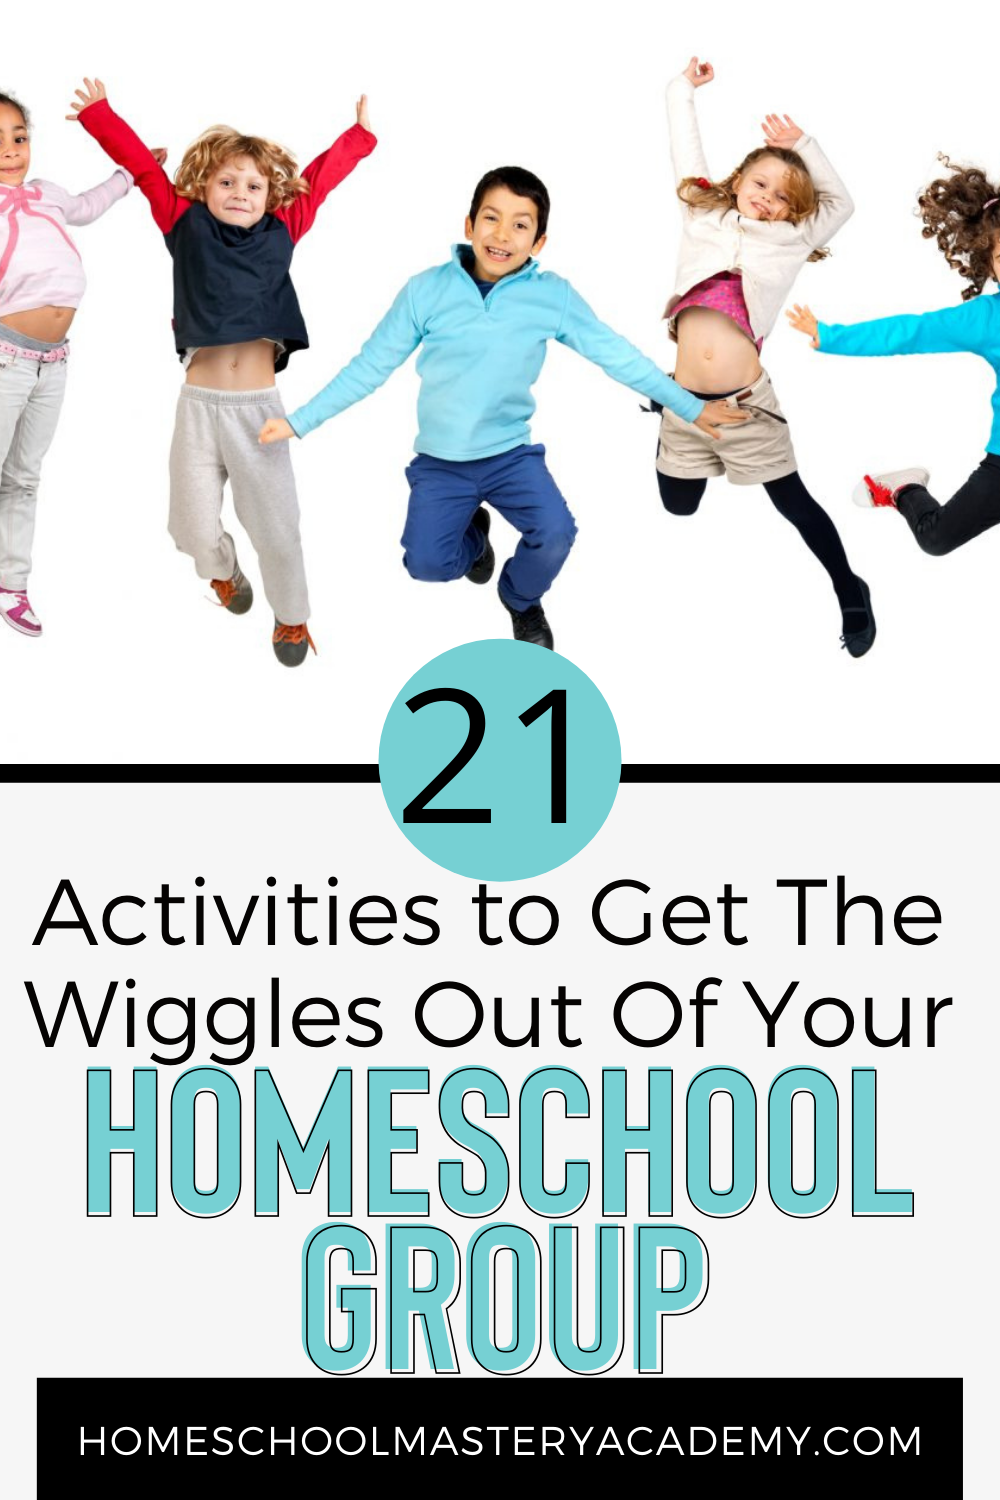 Grab the FREE PDF List >>>Here is a list of activities that will get the wiggles out of your homeschool group before you begin a lesson! #homeschool #homeschoolgroup #homeschoolprintables